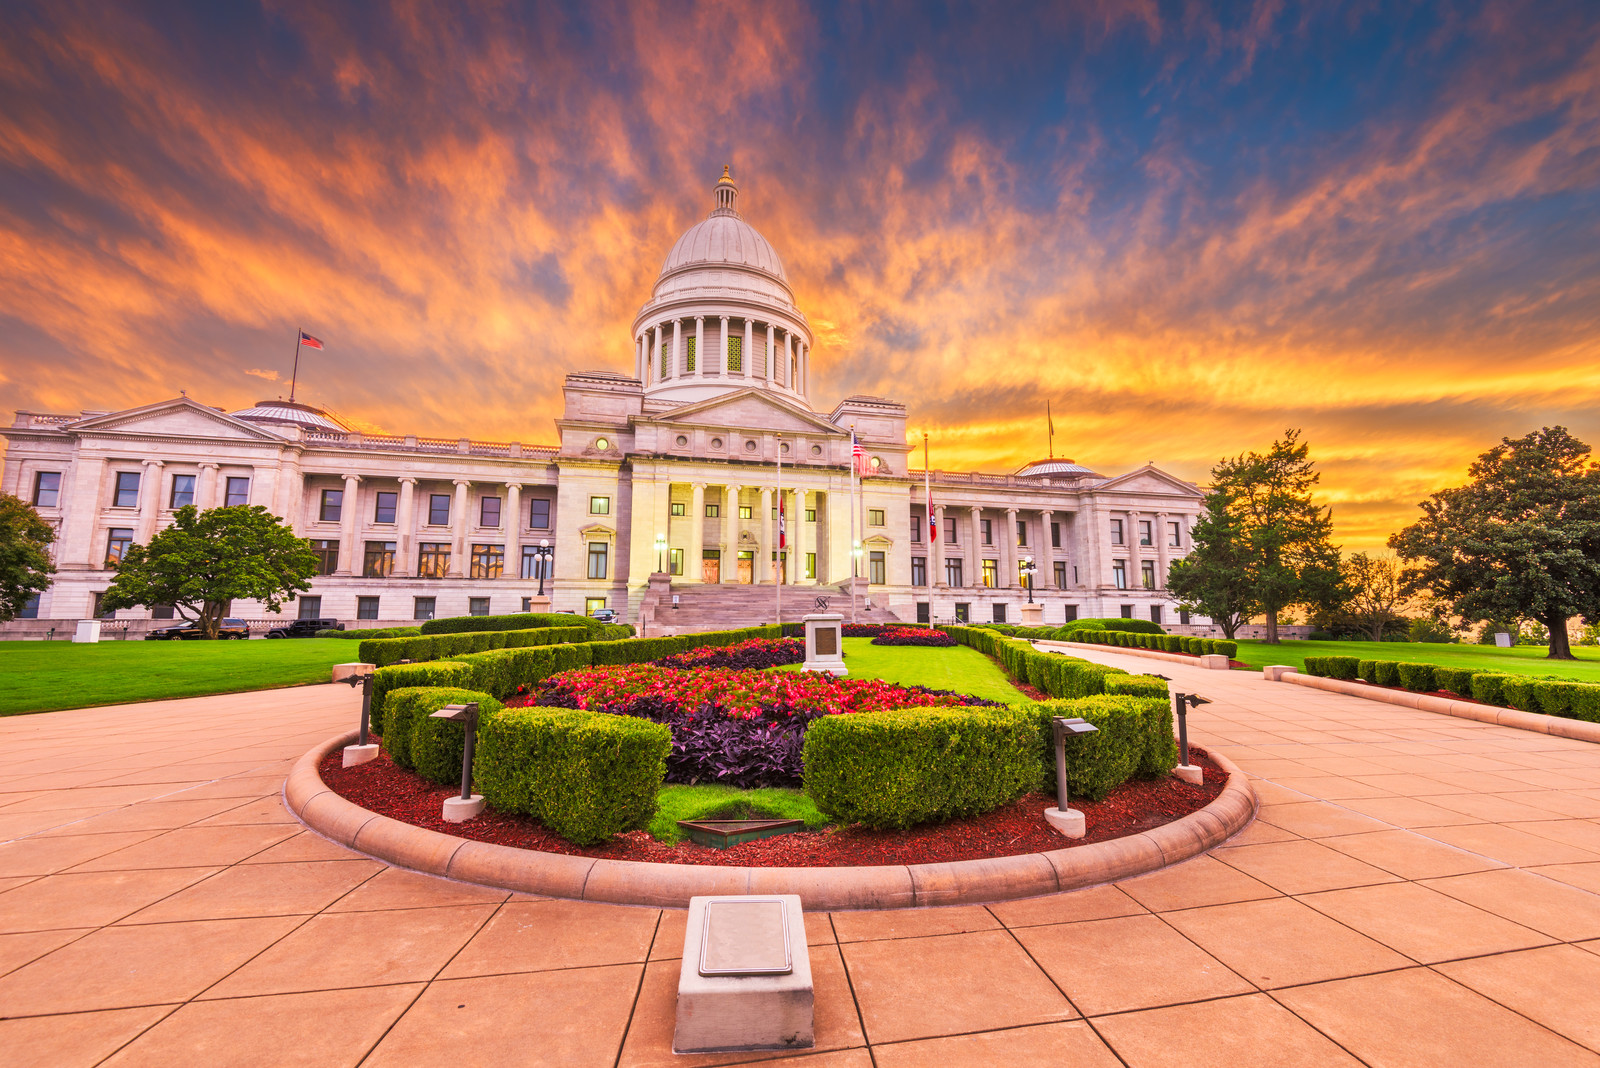 Top 5 Places to Retire in Arkansas- Capital building in little rock Arkansas at sunrise with a  manicured garden with flowers in the middle